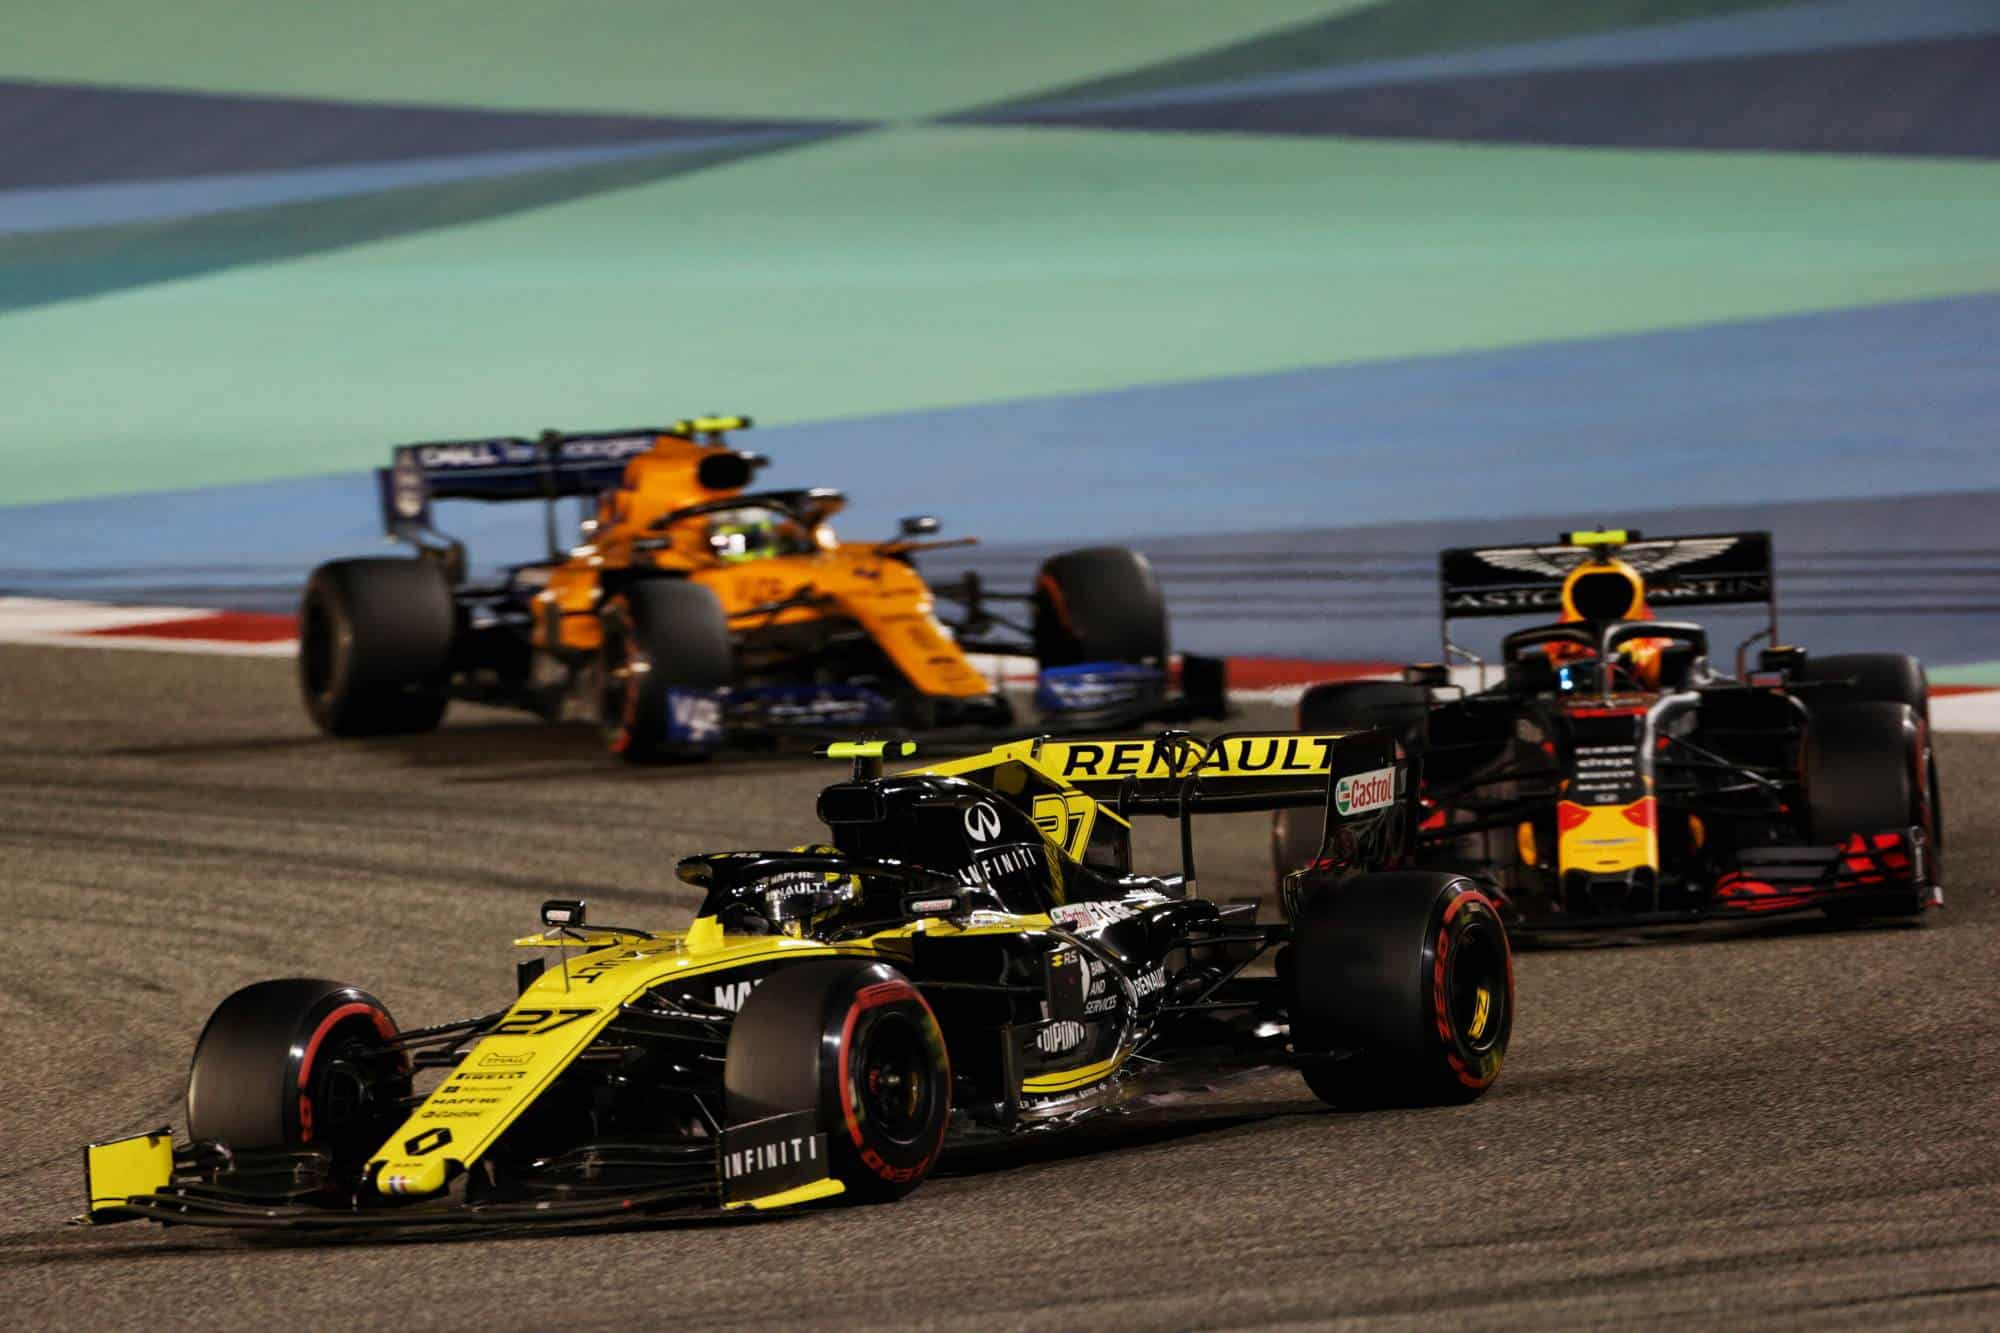 Hulkenberg leads Gasly and Norris Bahrain GP F1 2019 Photo Renault